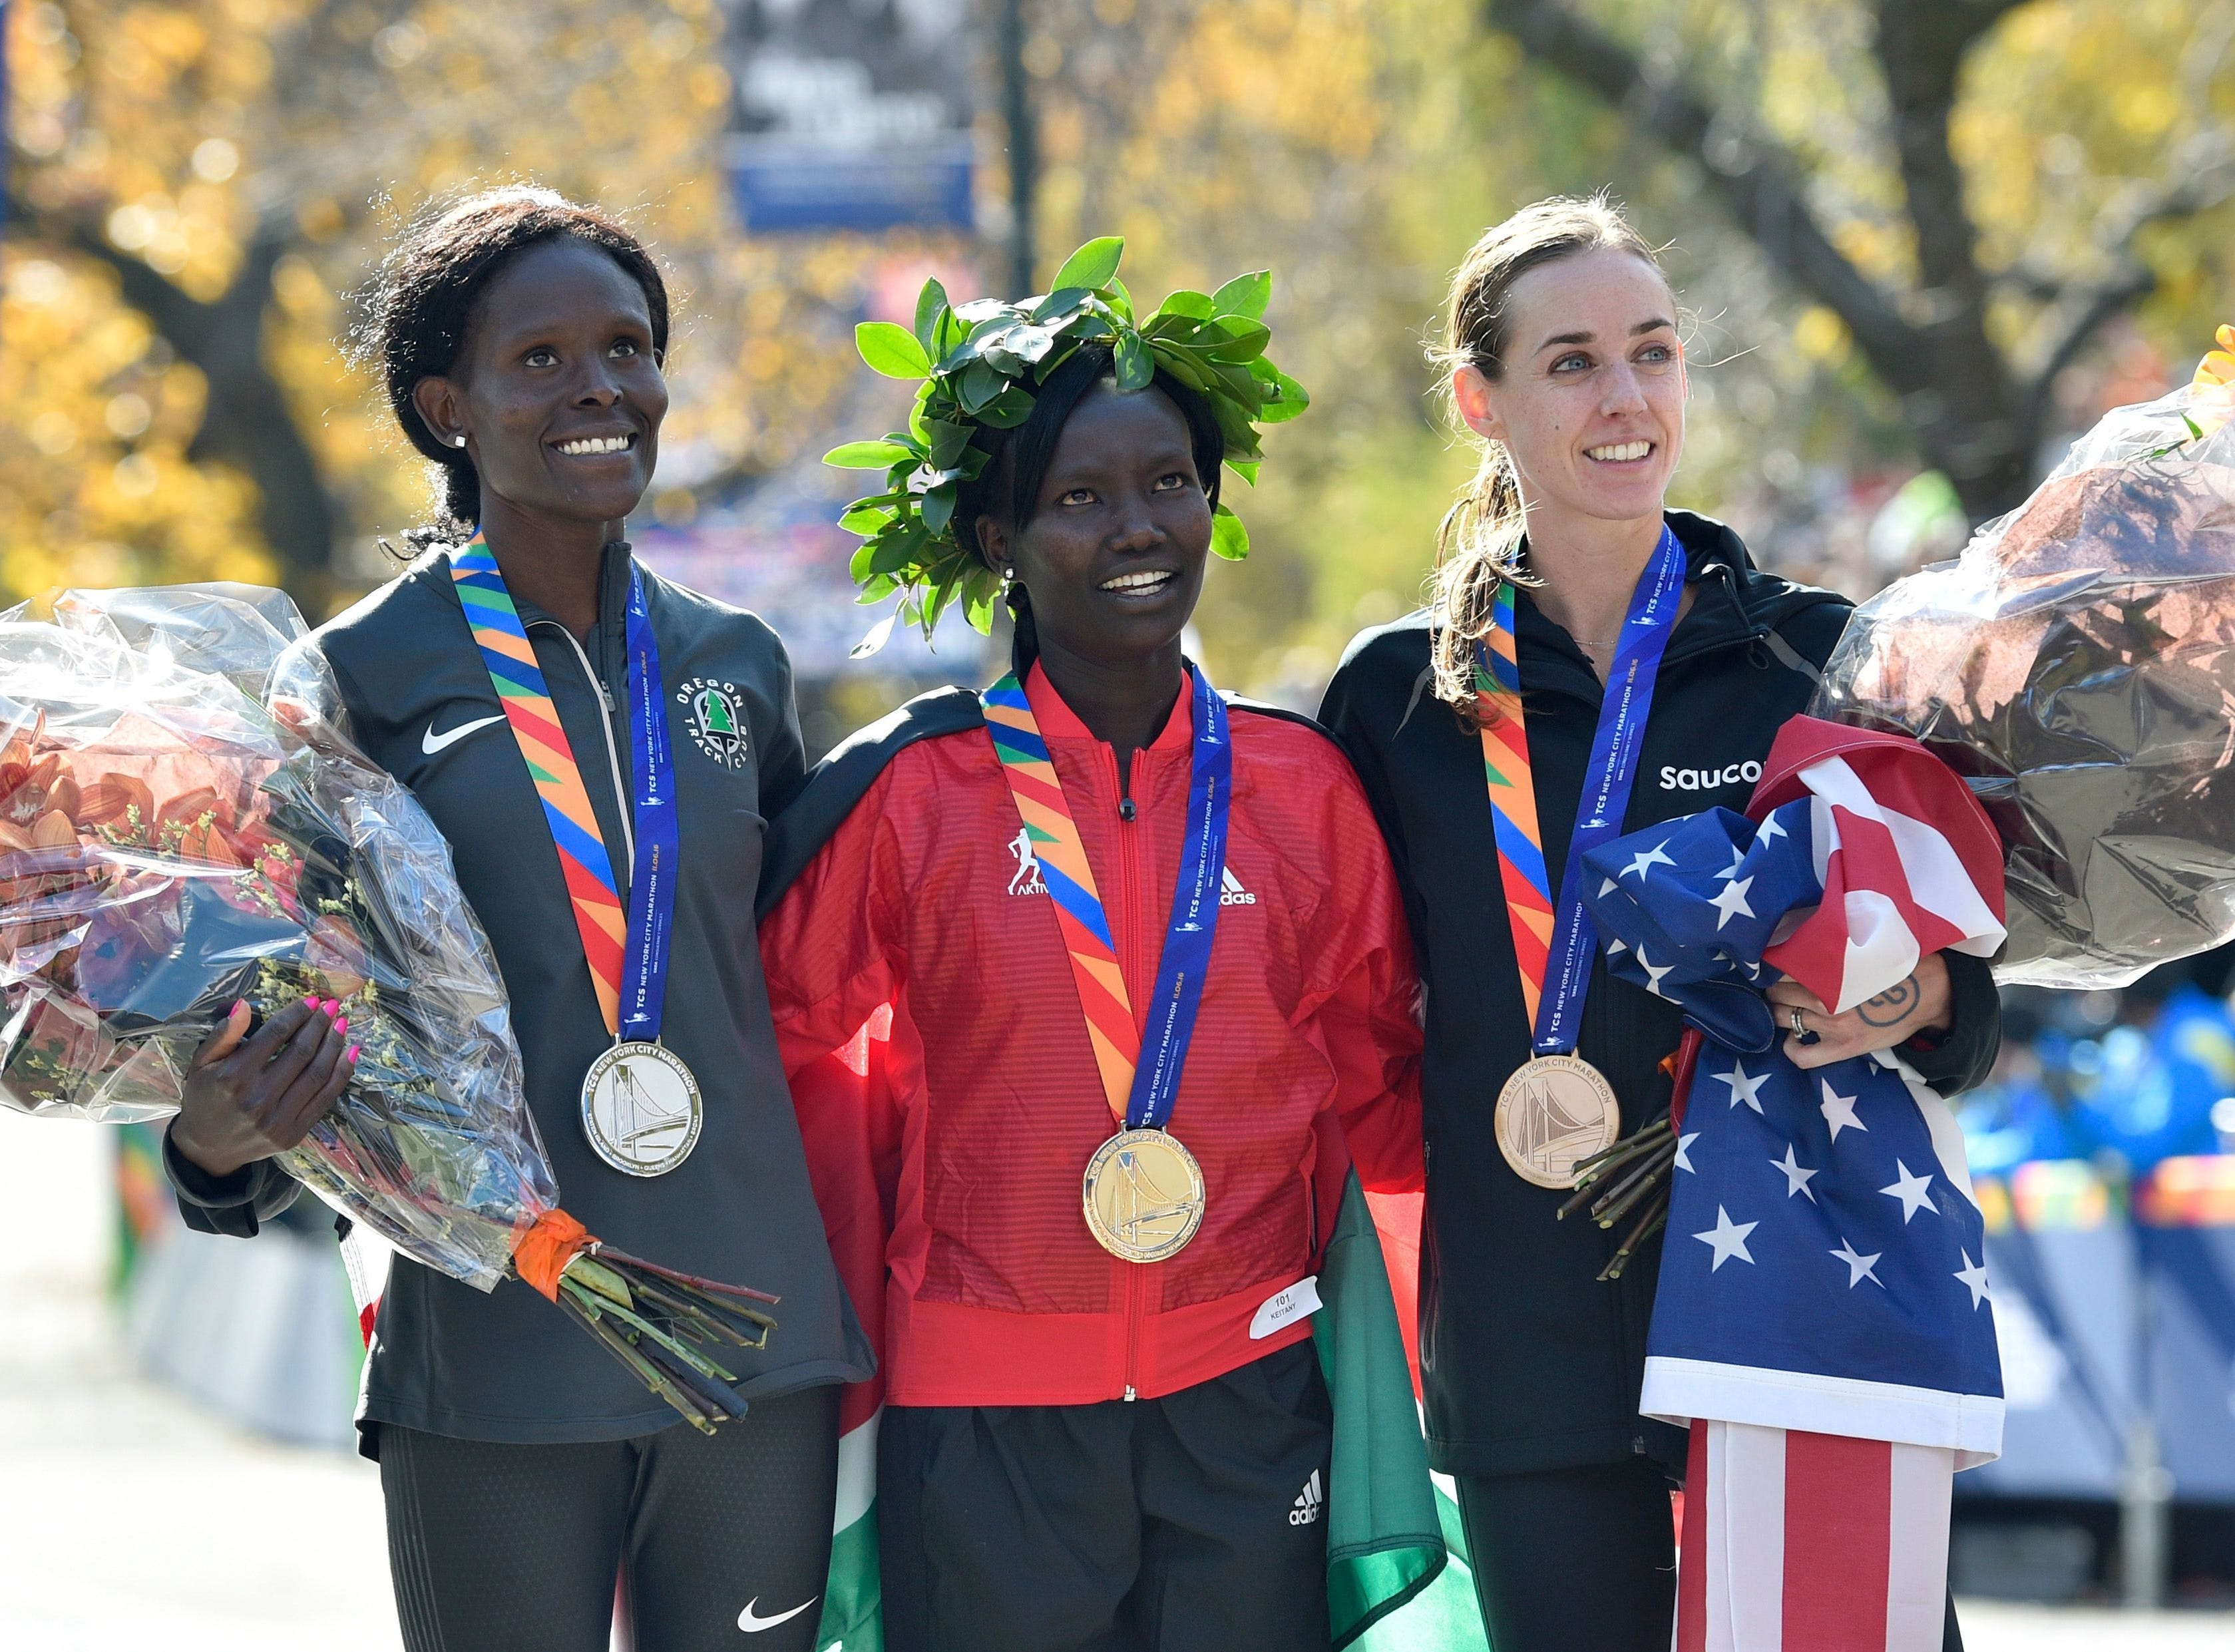 Second-place finisher Sally Kipyego (left), first-place finisher Mary Keitany (middle) and third-place finisher Molly Huddle (right) pose for a photo after the 2016 New York City Marathon. Huddle is a native of Elmira, NY.